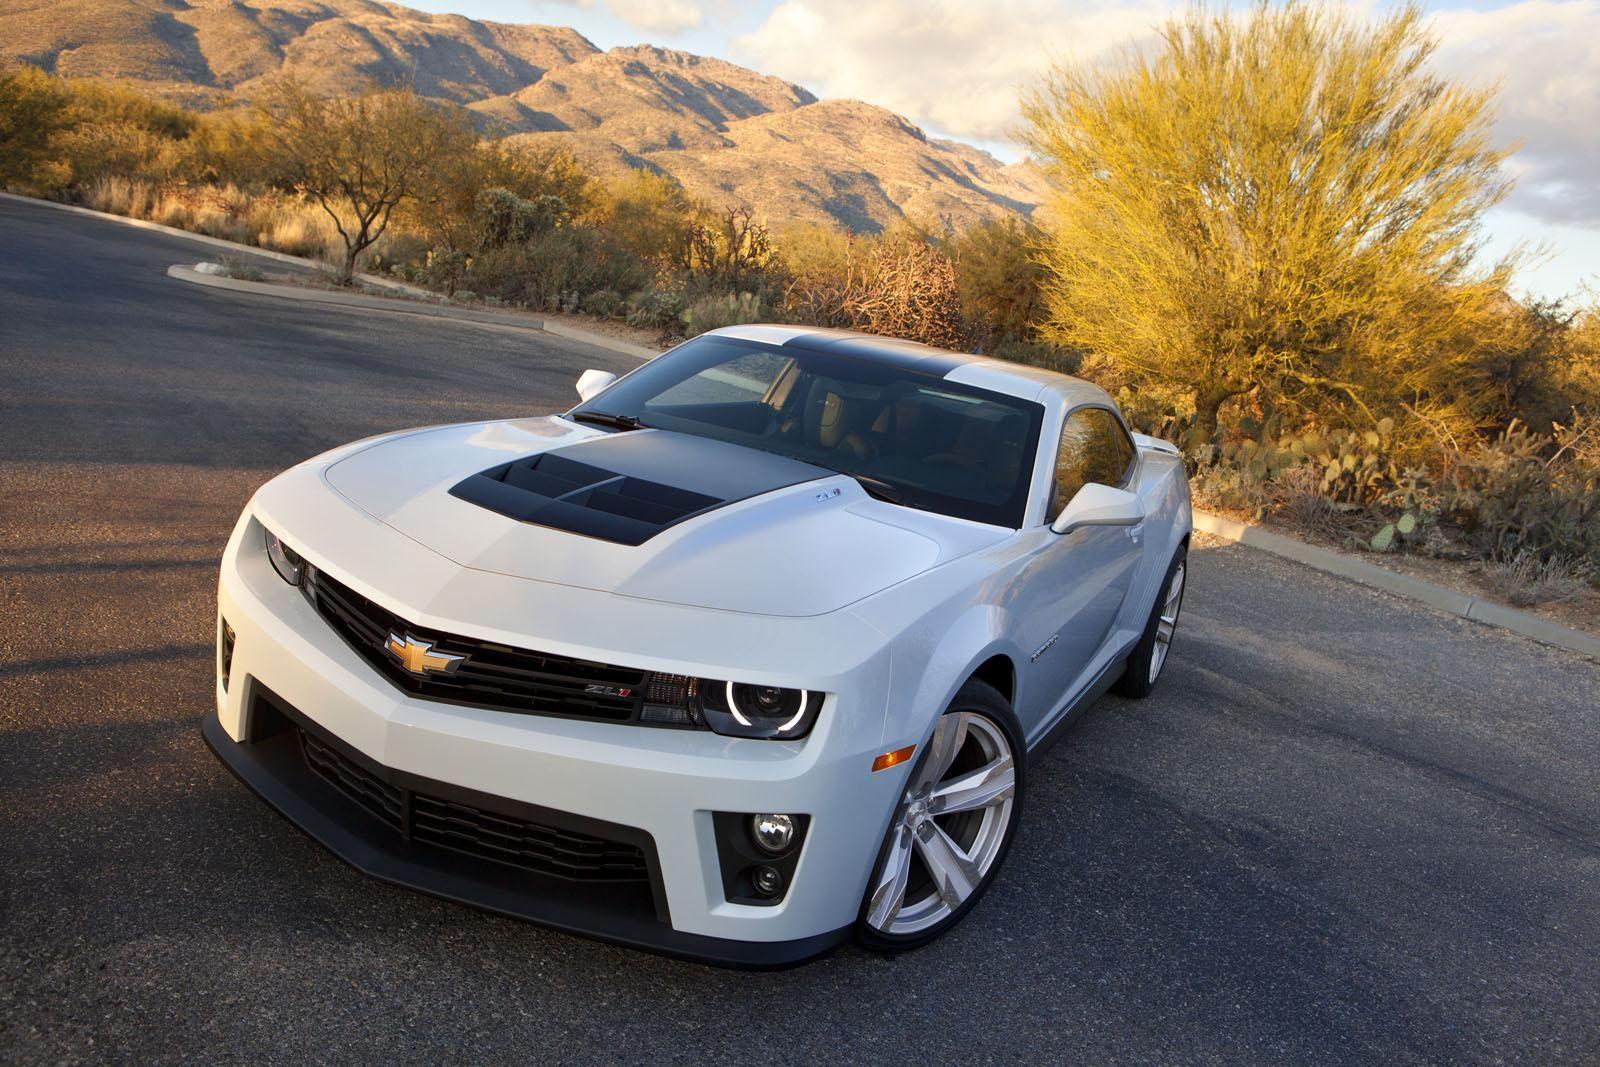 Pin By Allie Mccall On Wheels Chevrolet Camaro Zl1 Camaro Zl1 Chevrolet Camaro